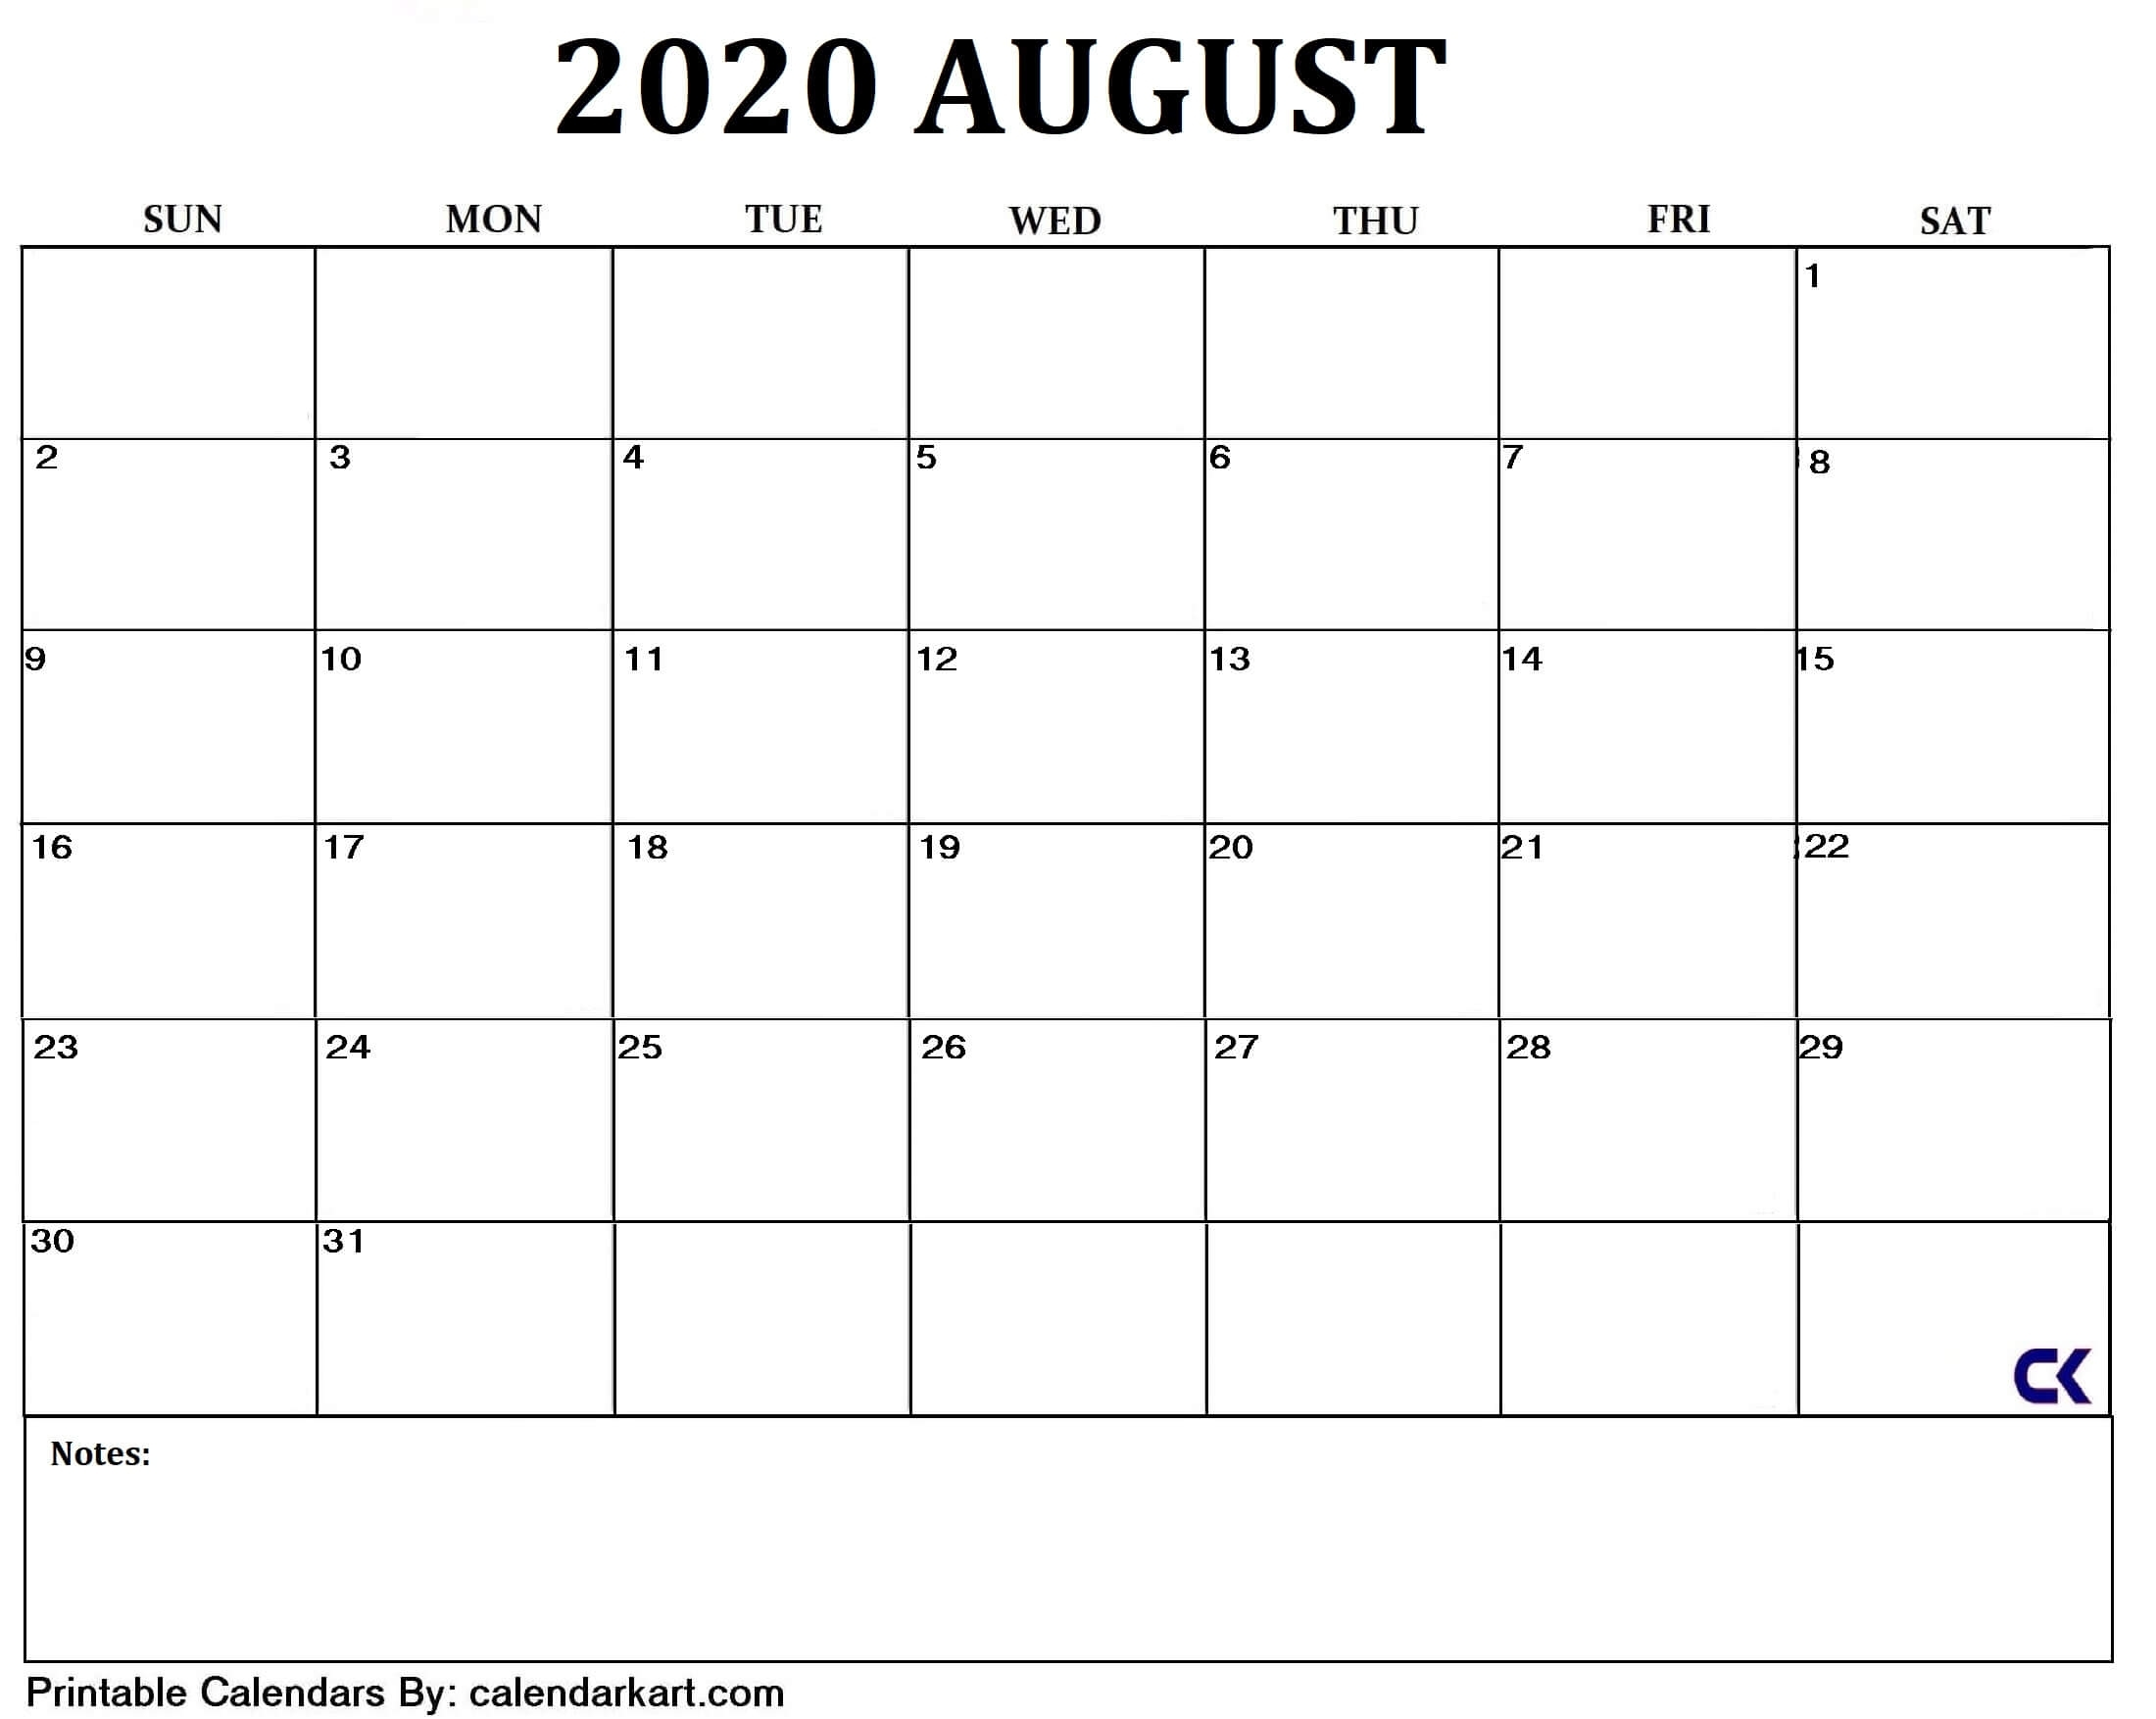 5 Free Printable August 2020 Calendar [Word, Excel, Pdf